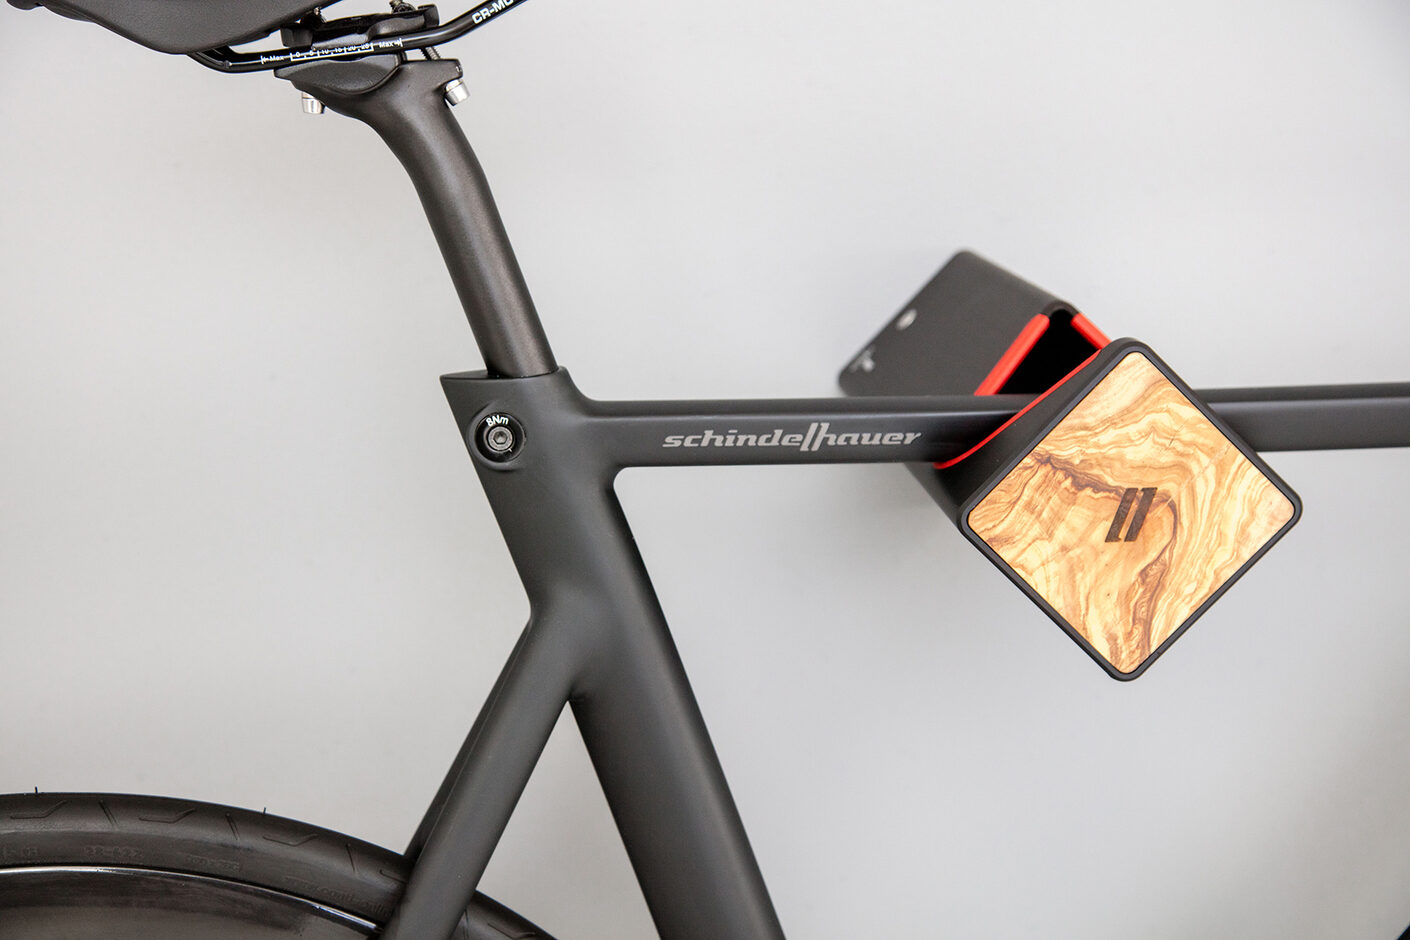 Image gallery Bicycle Accessories